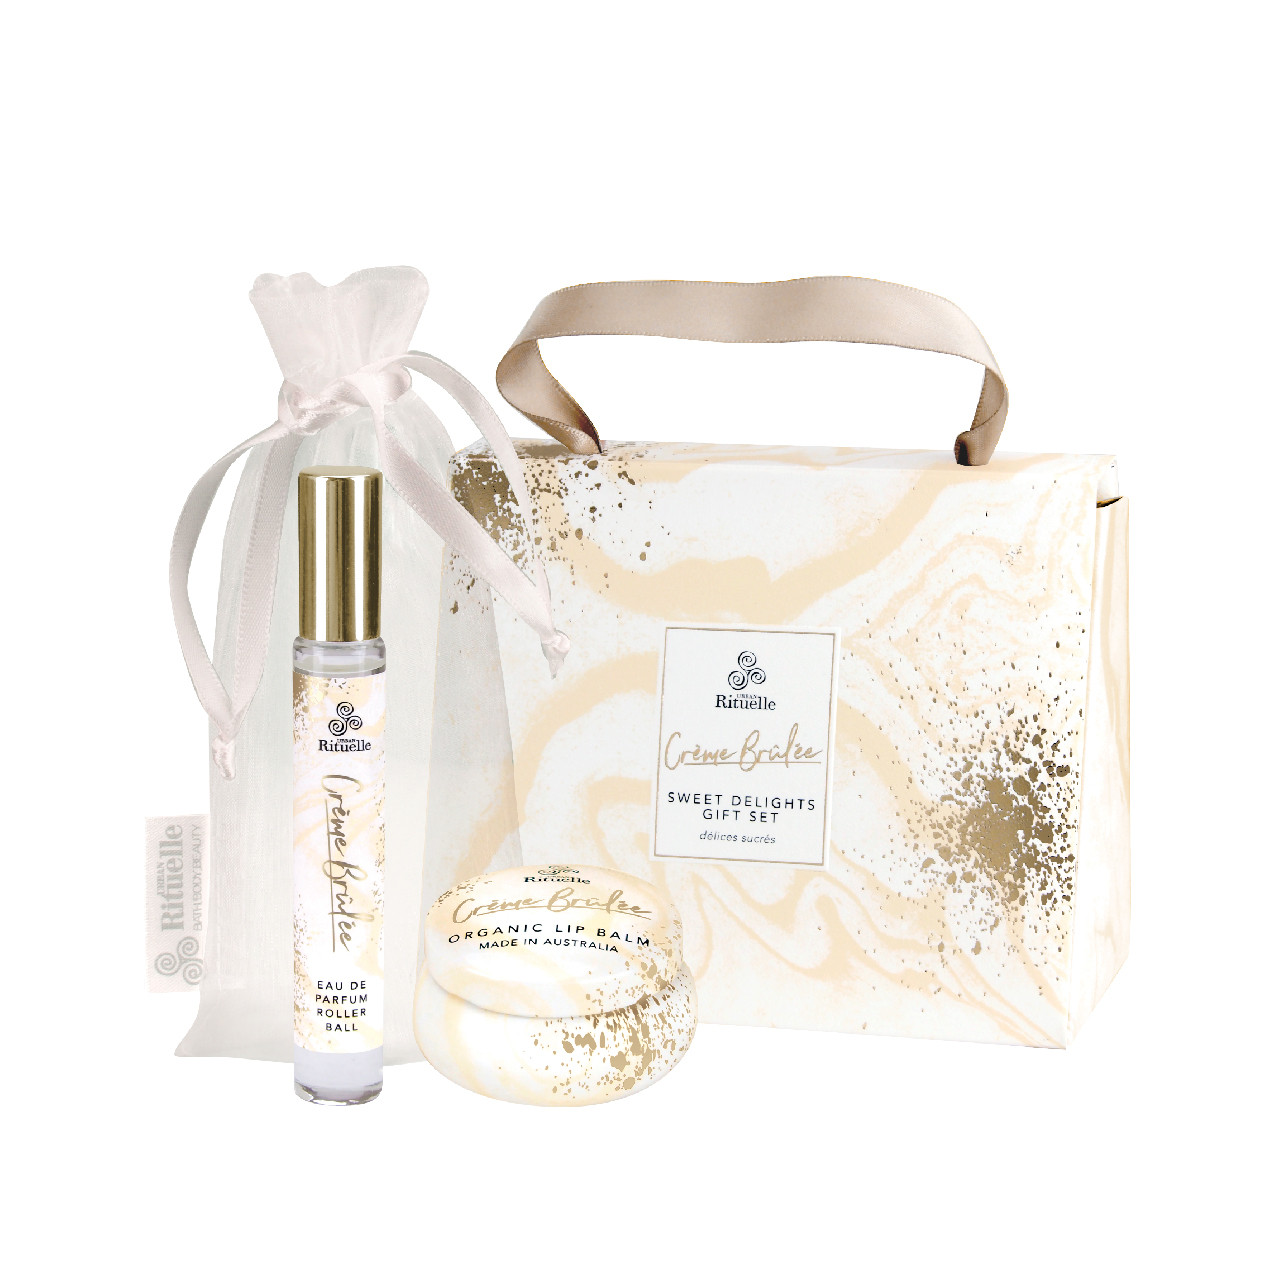 Sweet Treats - Creme Brulee - Sweet Delights Gift Set - Urban Rituelle